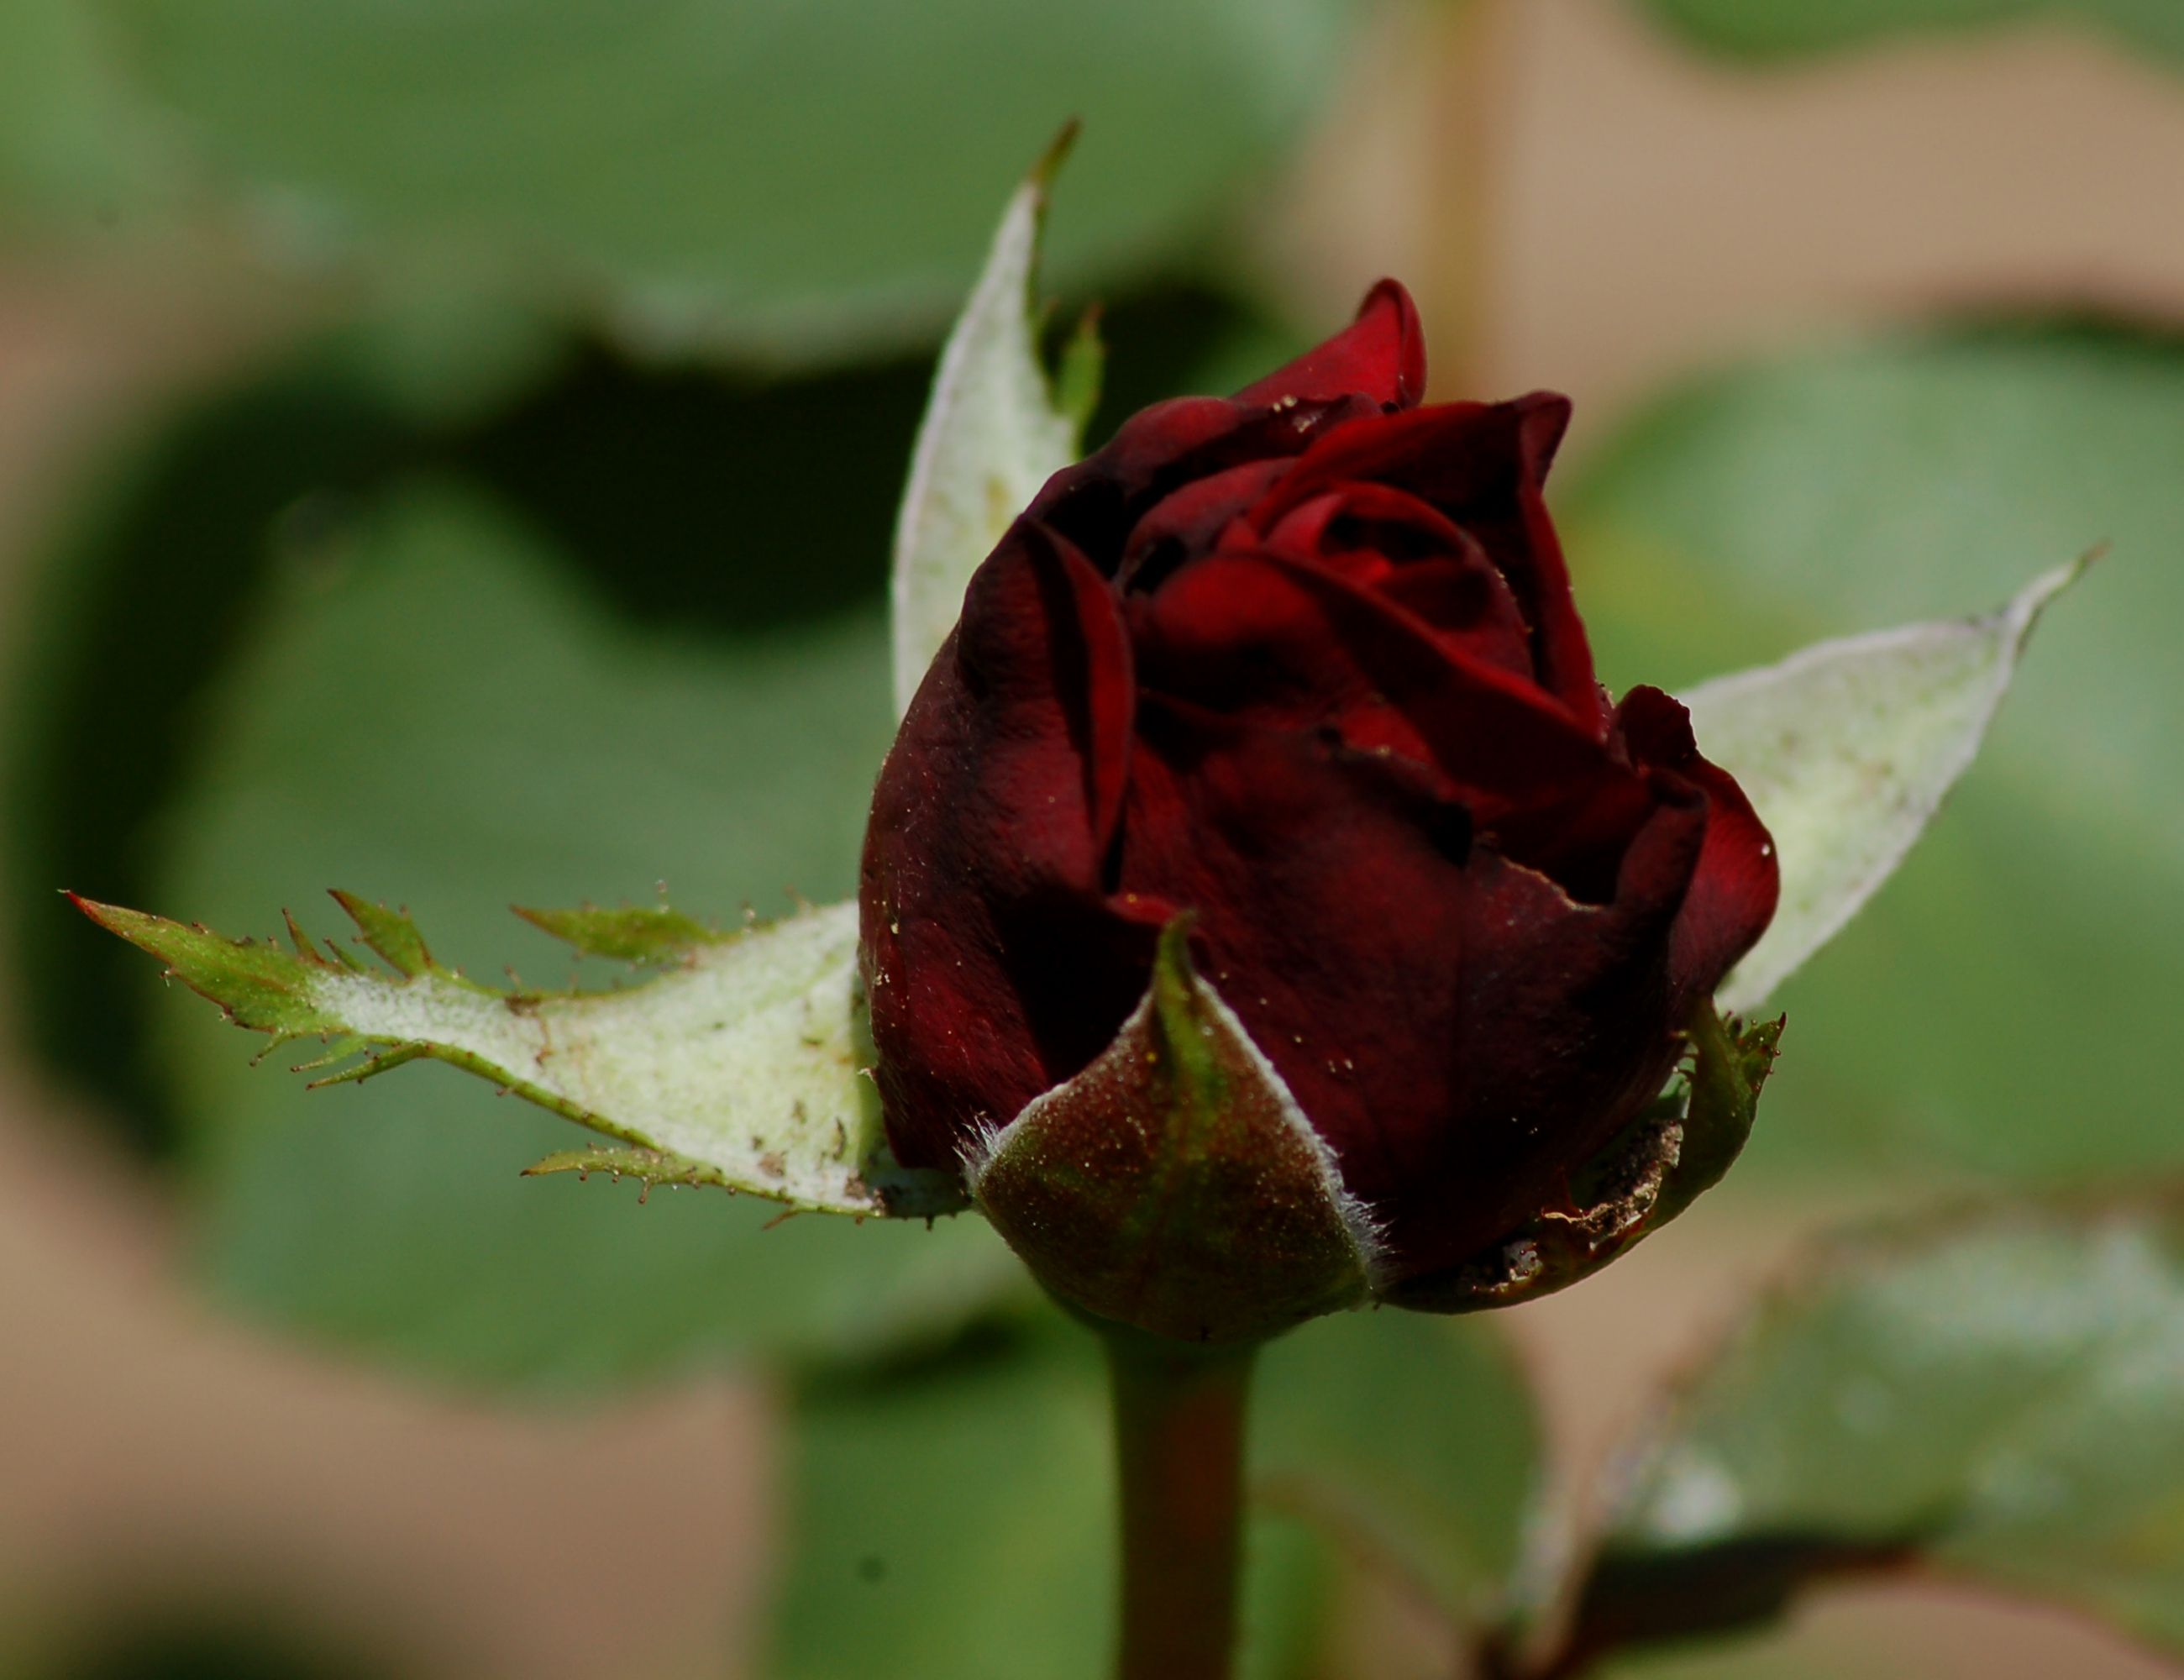 What Black Roses Mean and Other Facts About Roses